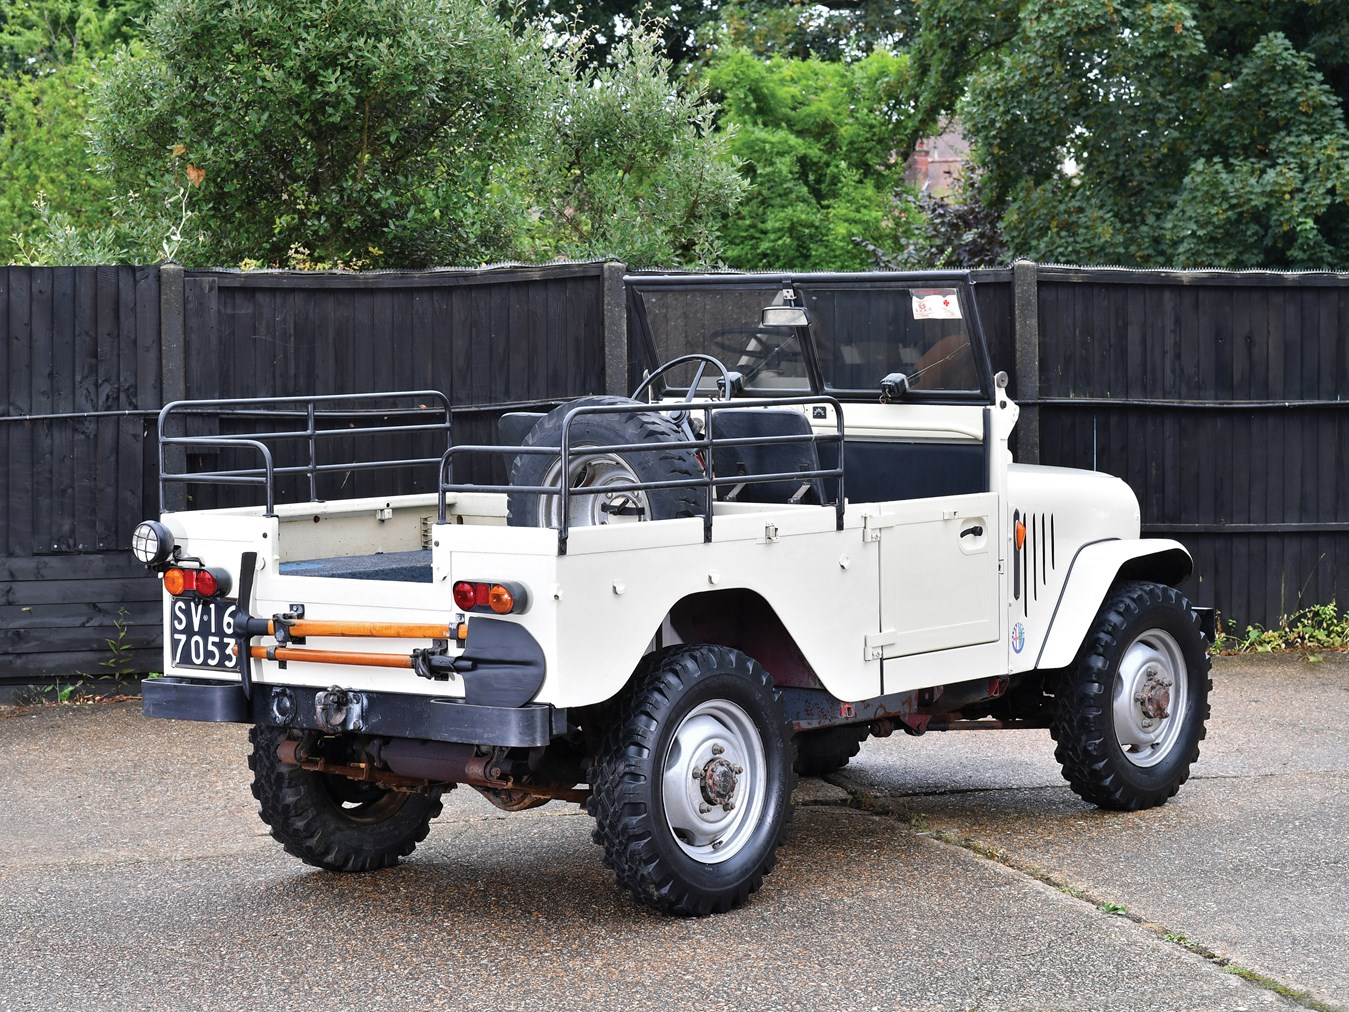 The Alfa Romeo 1900M 4WD may bear some similarities to the American Jeep and the British Land Rover but it is an original design nonetheless.